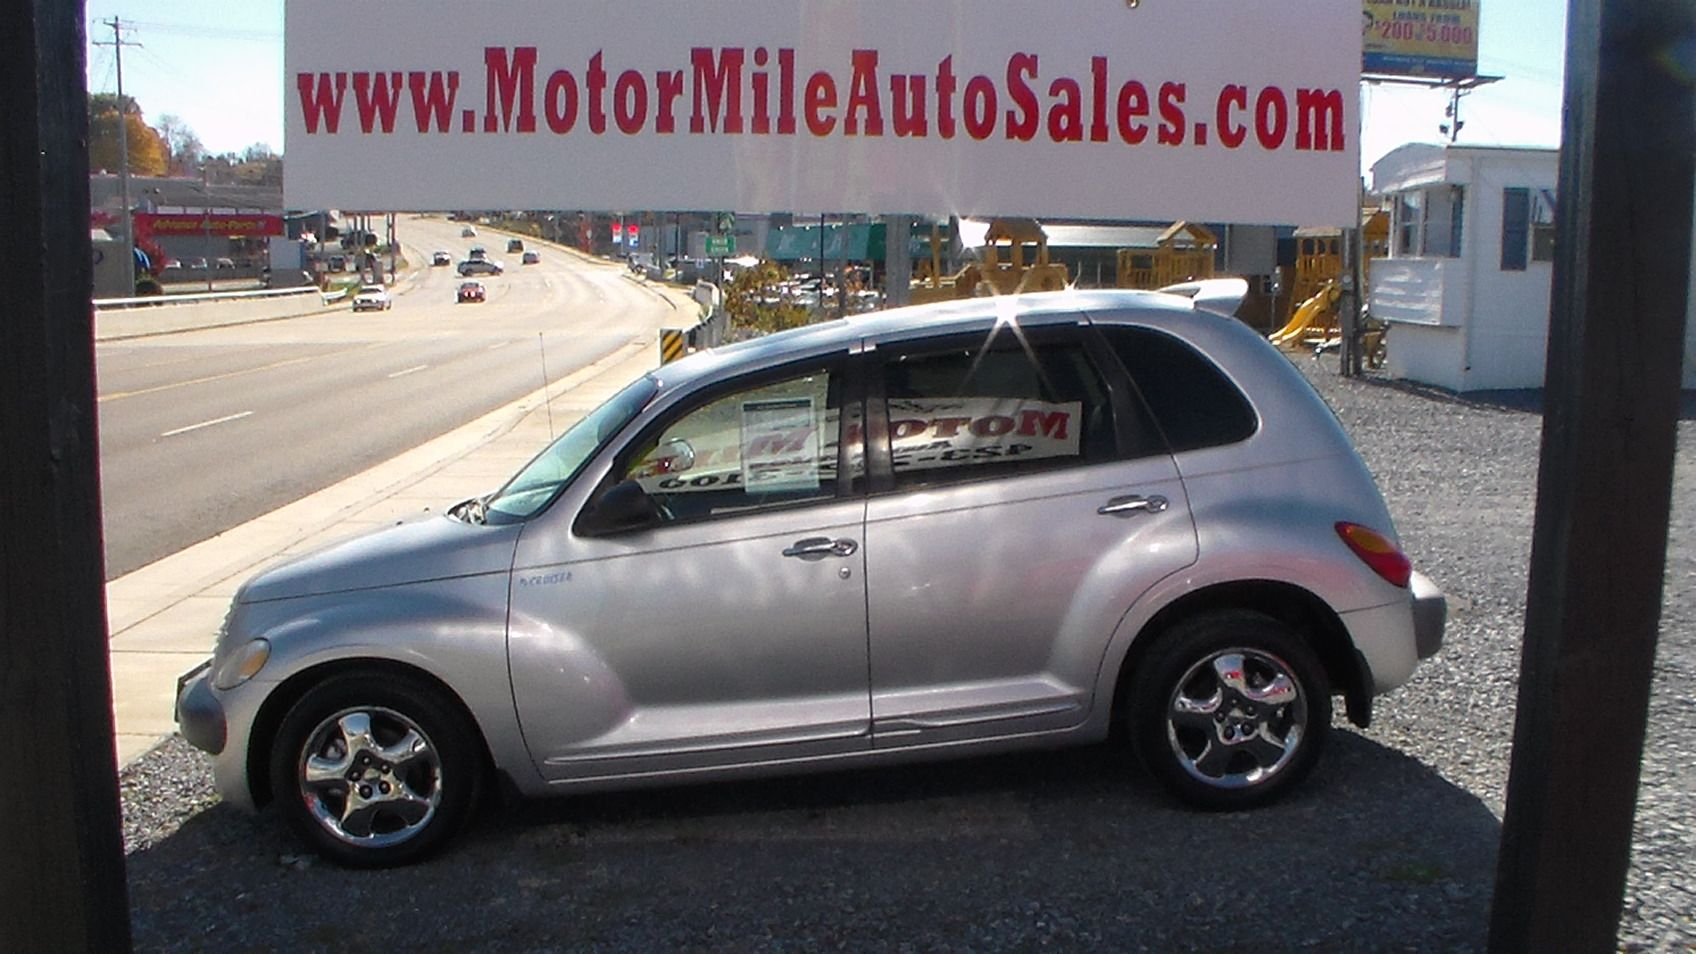 You Are Looking At A 2001 Chrysler Pt Cruiser Limited Edition